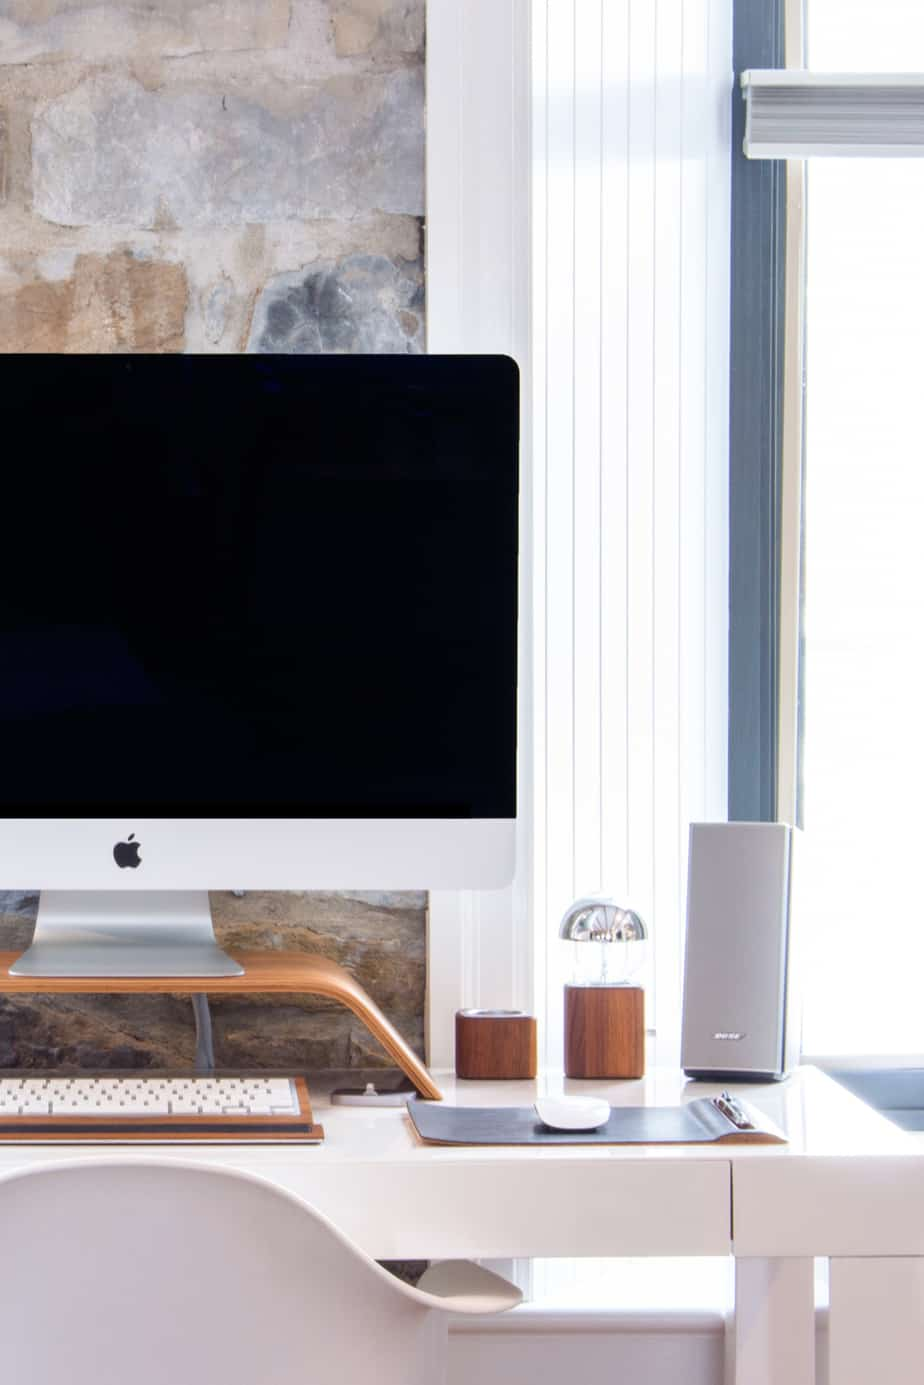 Wide range of iMac repairs in Cardiff at NiwTech Cardiff Wales